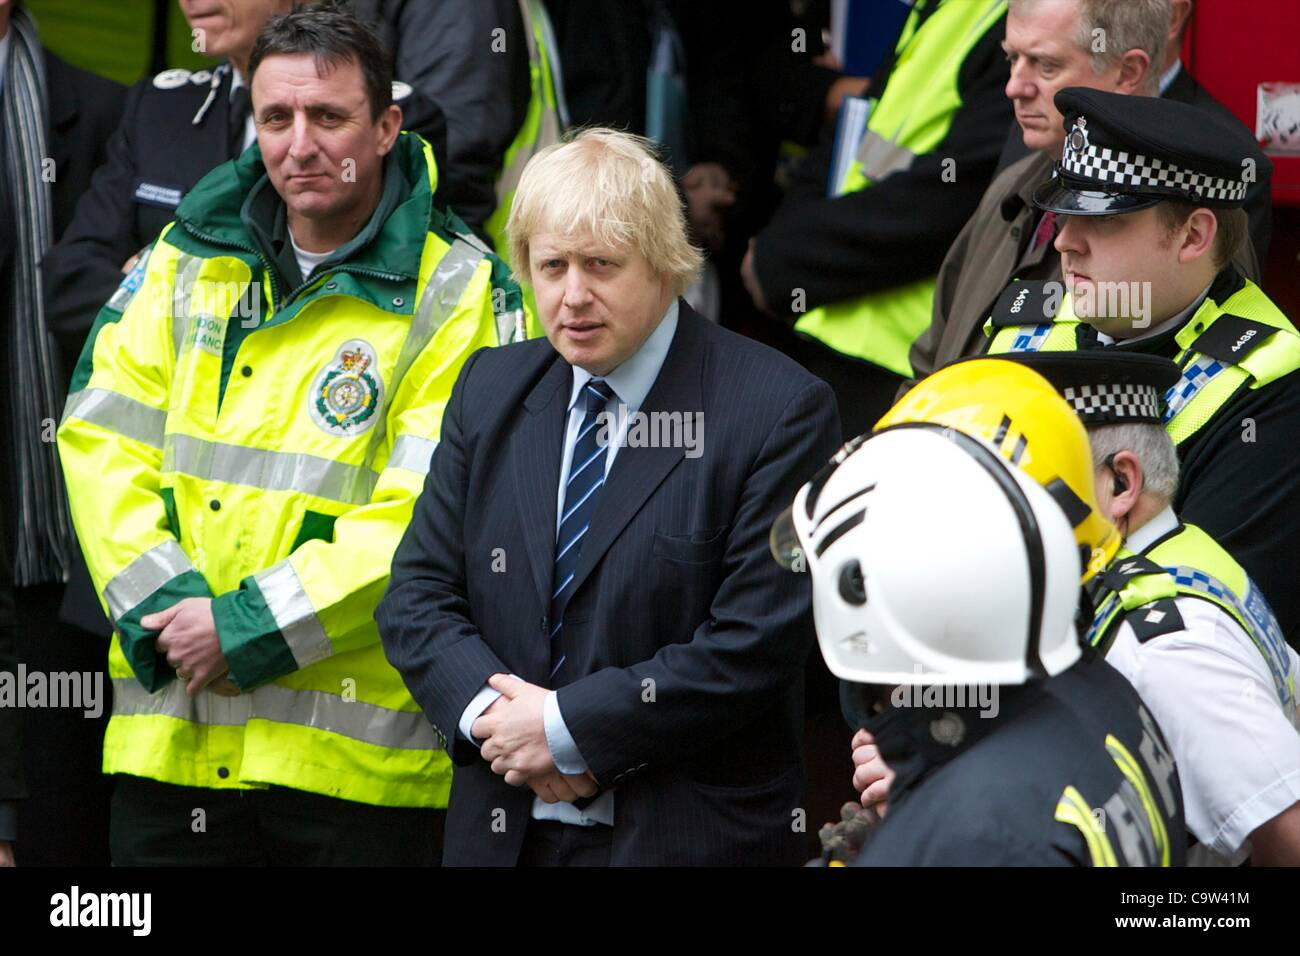 Mayor Boris Johnson visits the emergency services during a training exercise at the Aldwych underground station - Stock Image